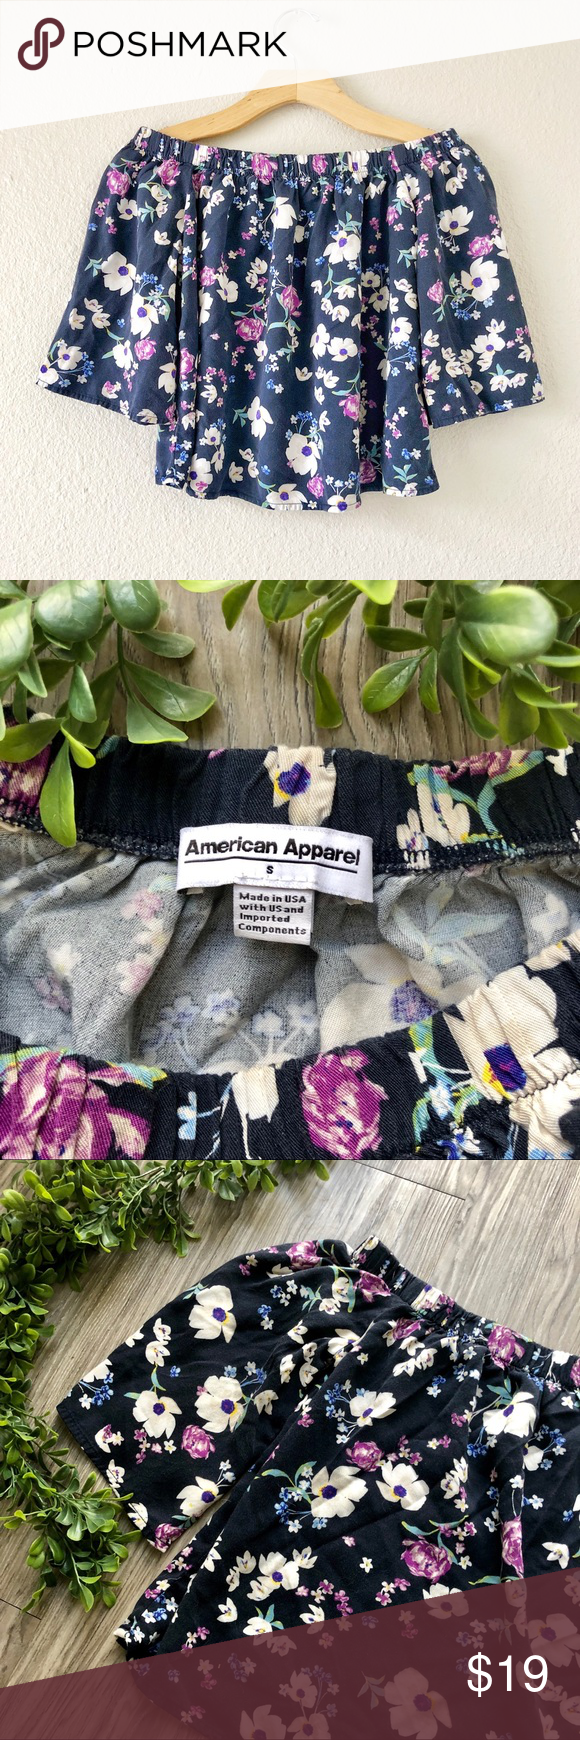 American Apparel Floral Off the Shoulder Top American Apparel Off the Shoulder Top. Floral print pattern. Pullover style, stretcher elastic around Top. Flowy sleeves and body. Lightweight, 100% viscose. EUC.'  Bust: 14.5